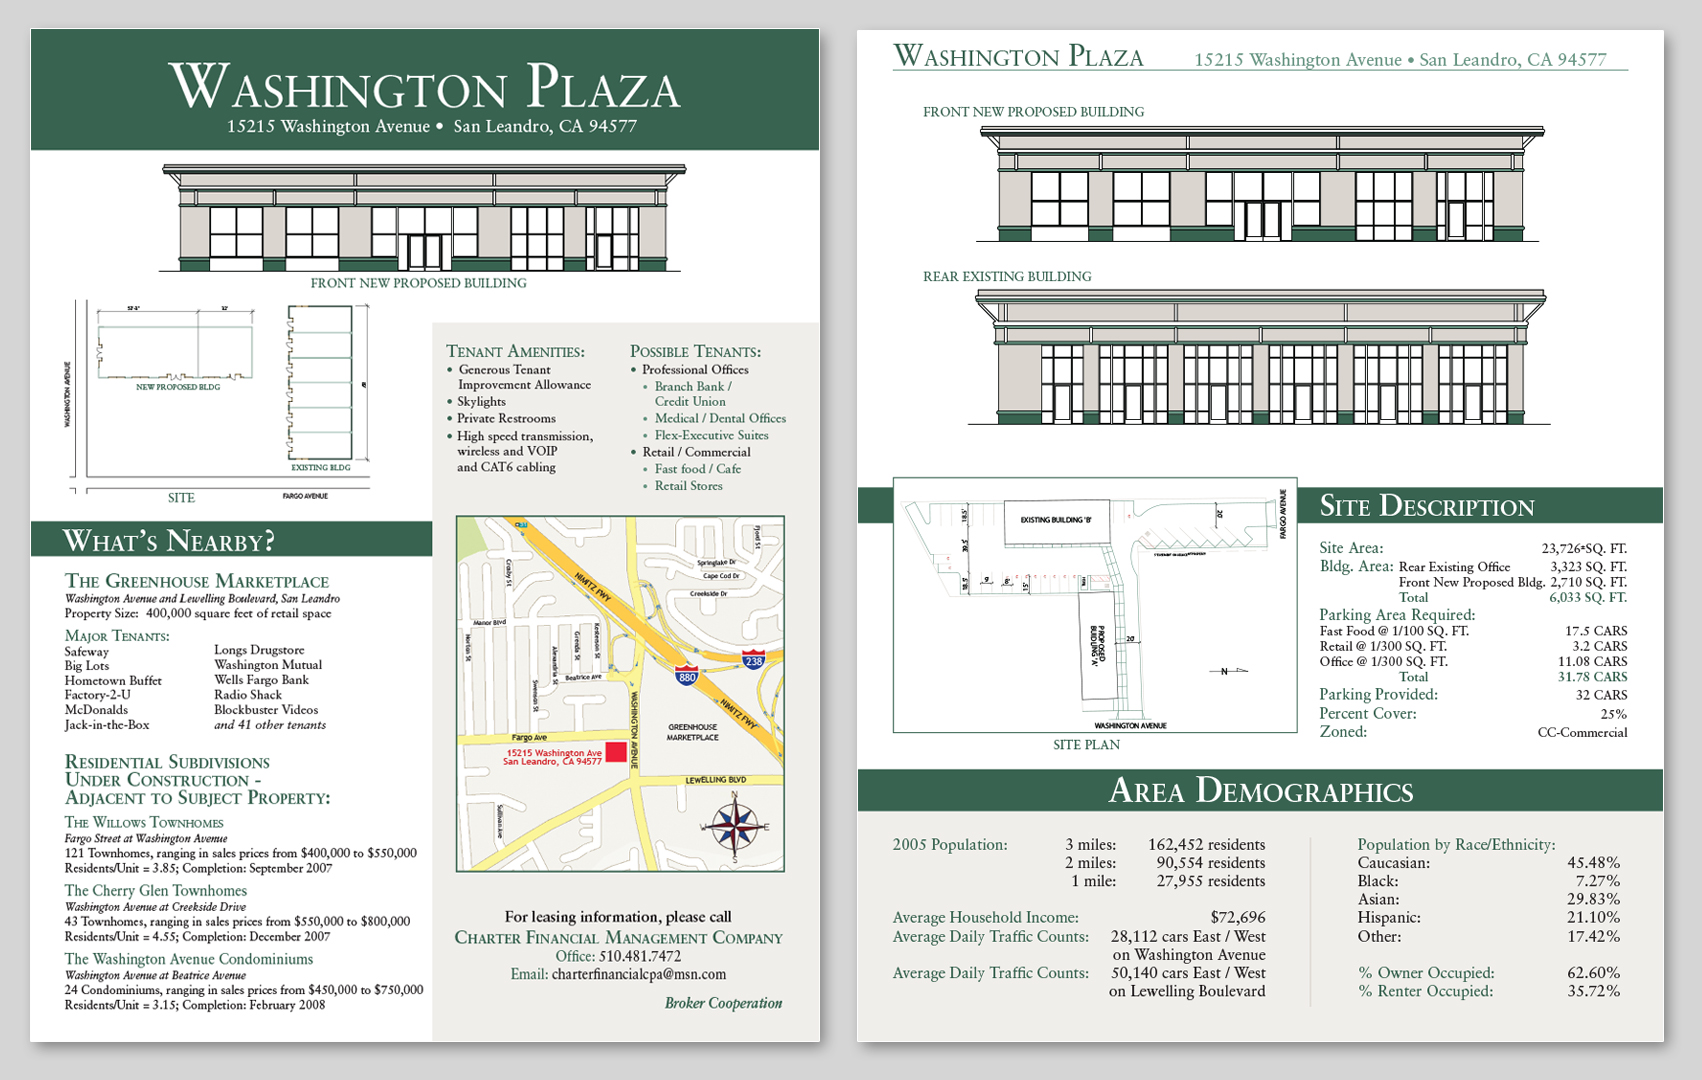 Washington Plaza Plan Advertisement